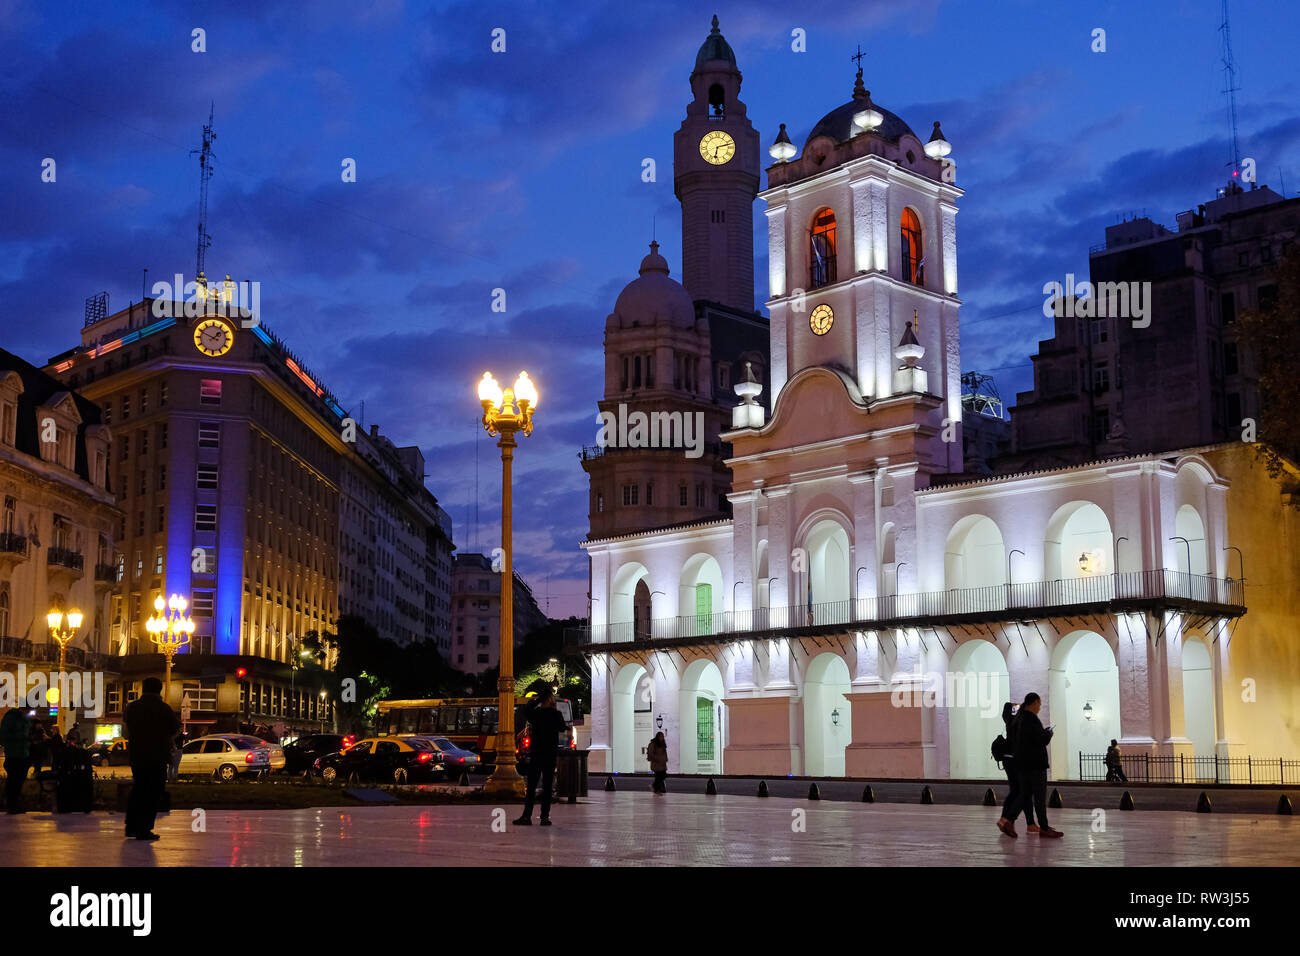 Buenos Aires Cabildo, the old town council, by night, Plaza De Mayo, main city square in Buenos Aires, Argentina - Stock Image